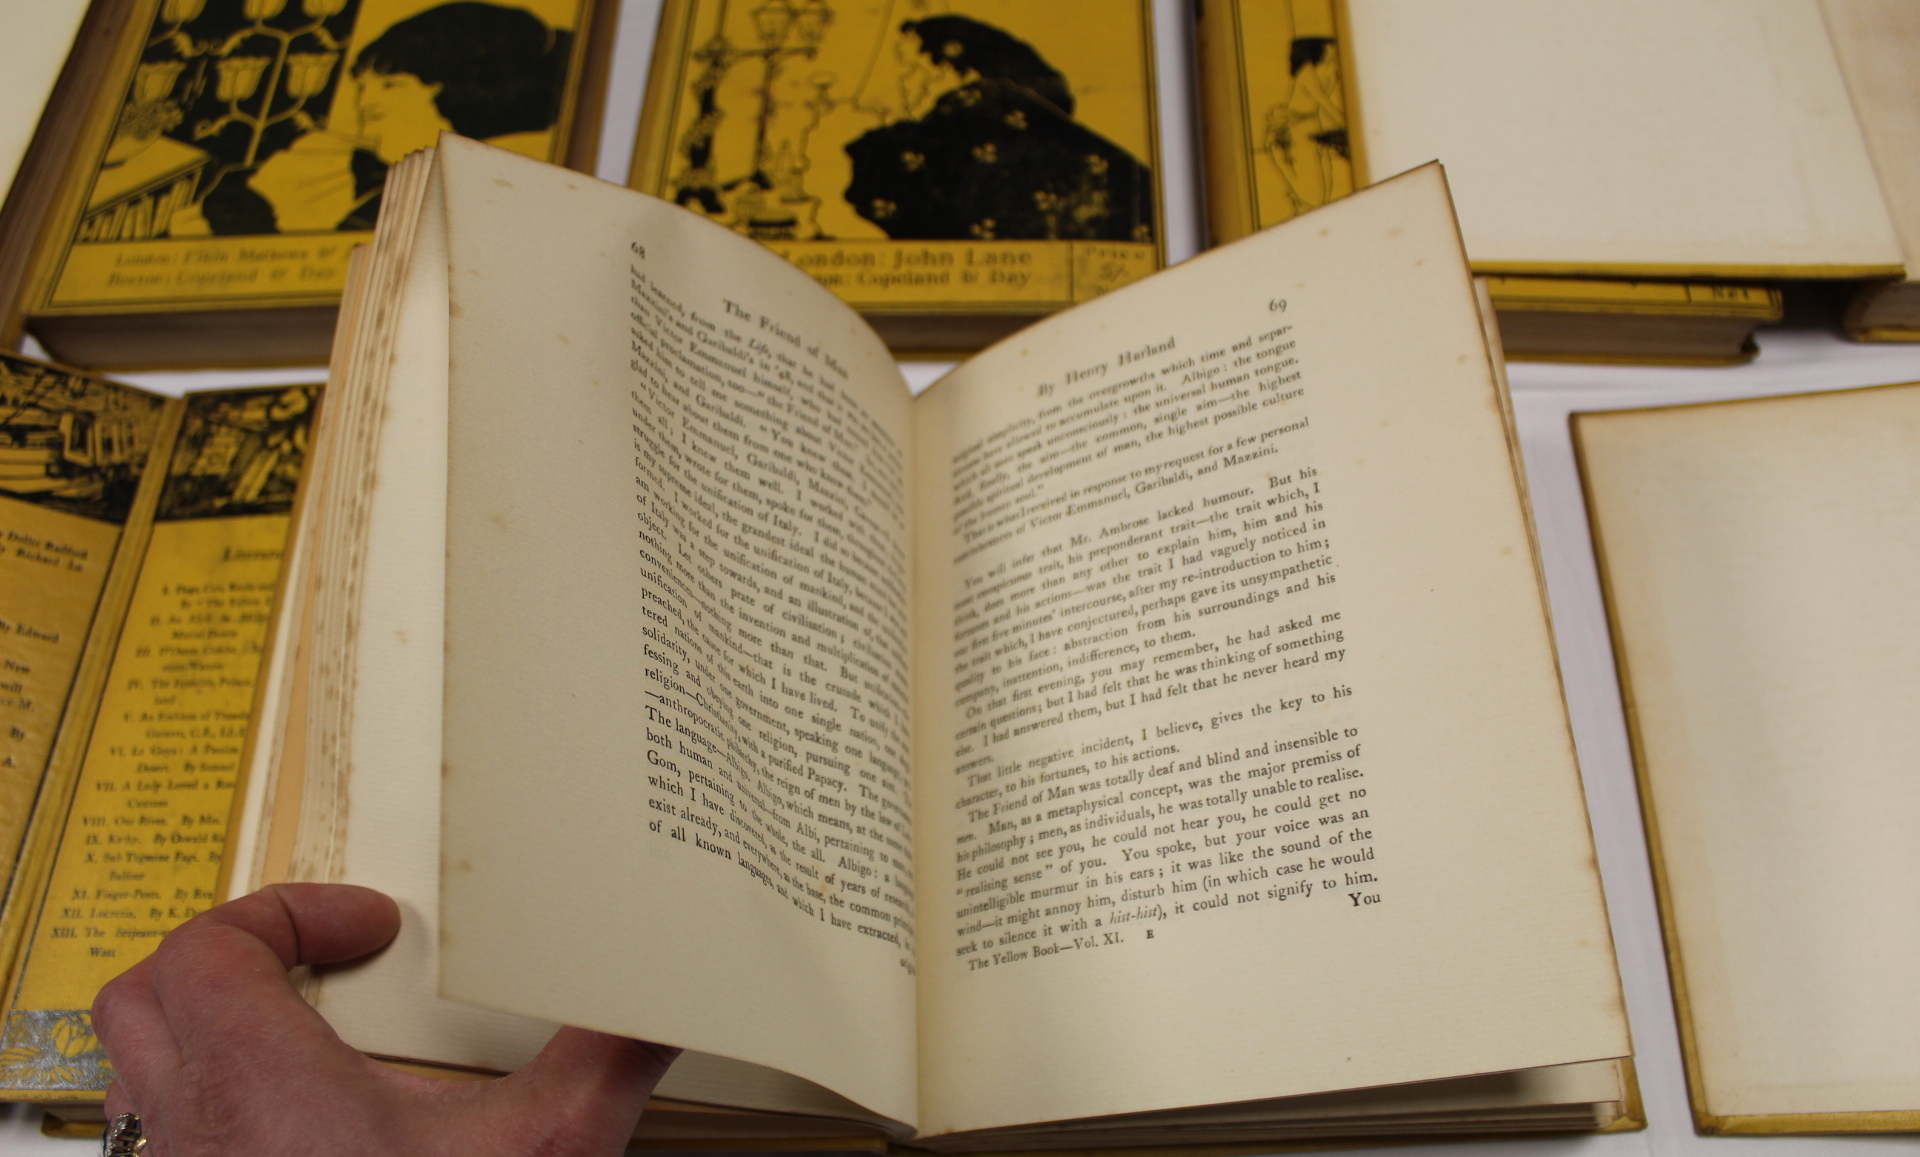 THE YELLOW BOOK.An Illustrated Quarterly. A set of 13 vols., many fine illus. Small quarto. - Image 18 of 45